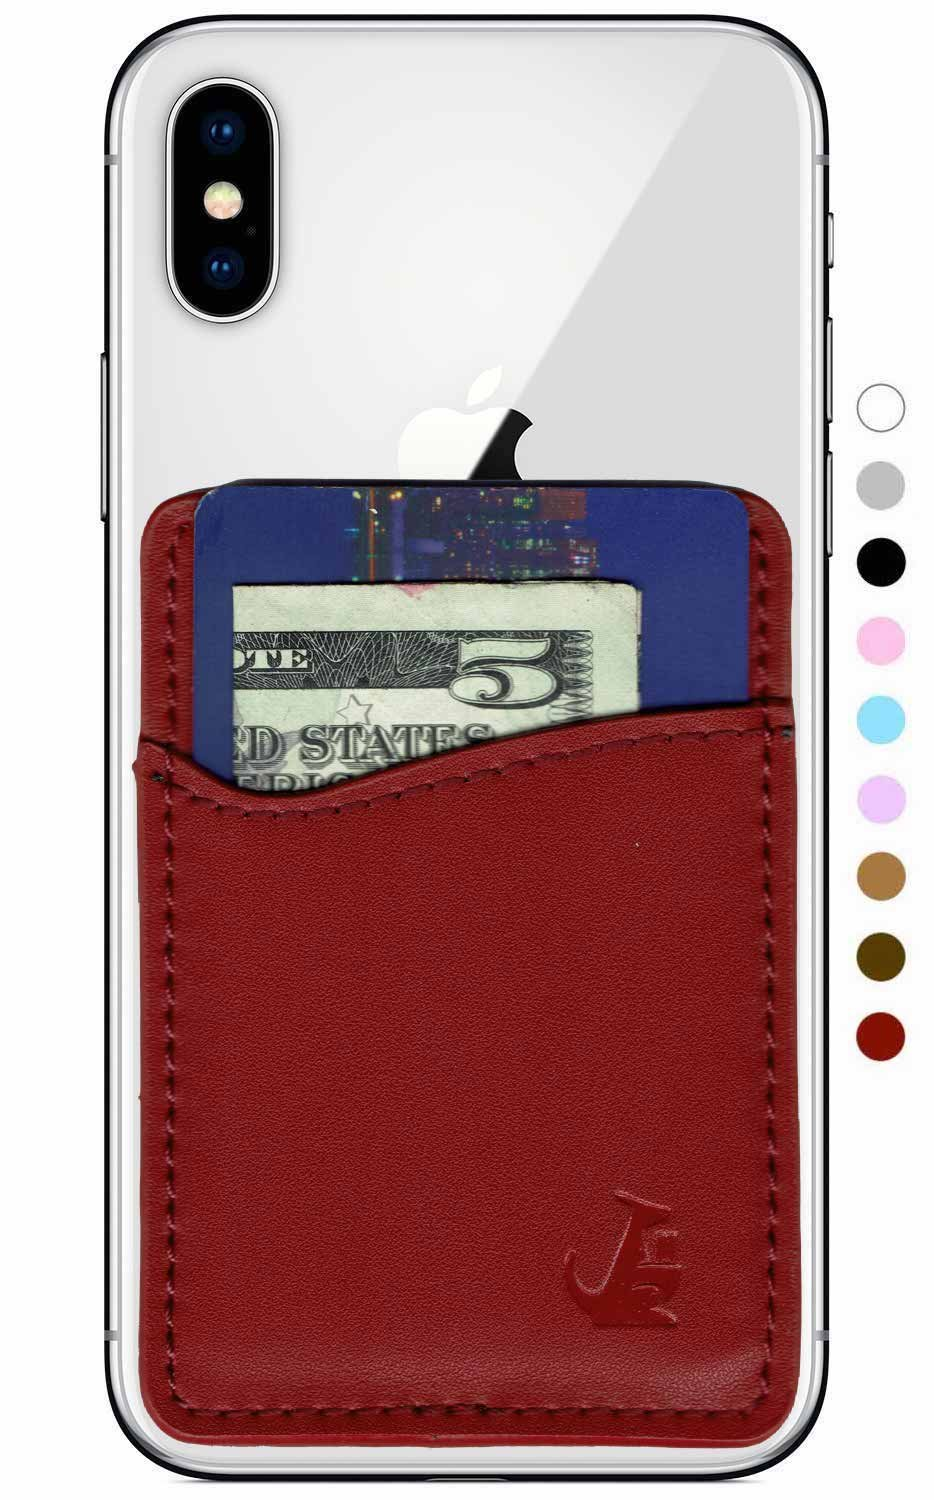 Wallaroo Premium Leather Phone Card Holder